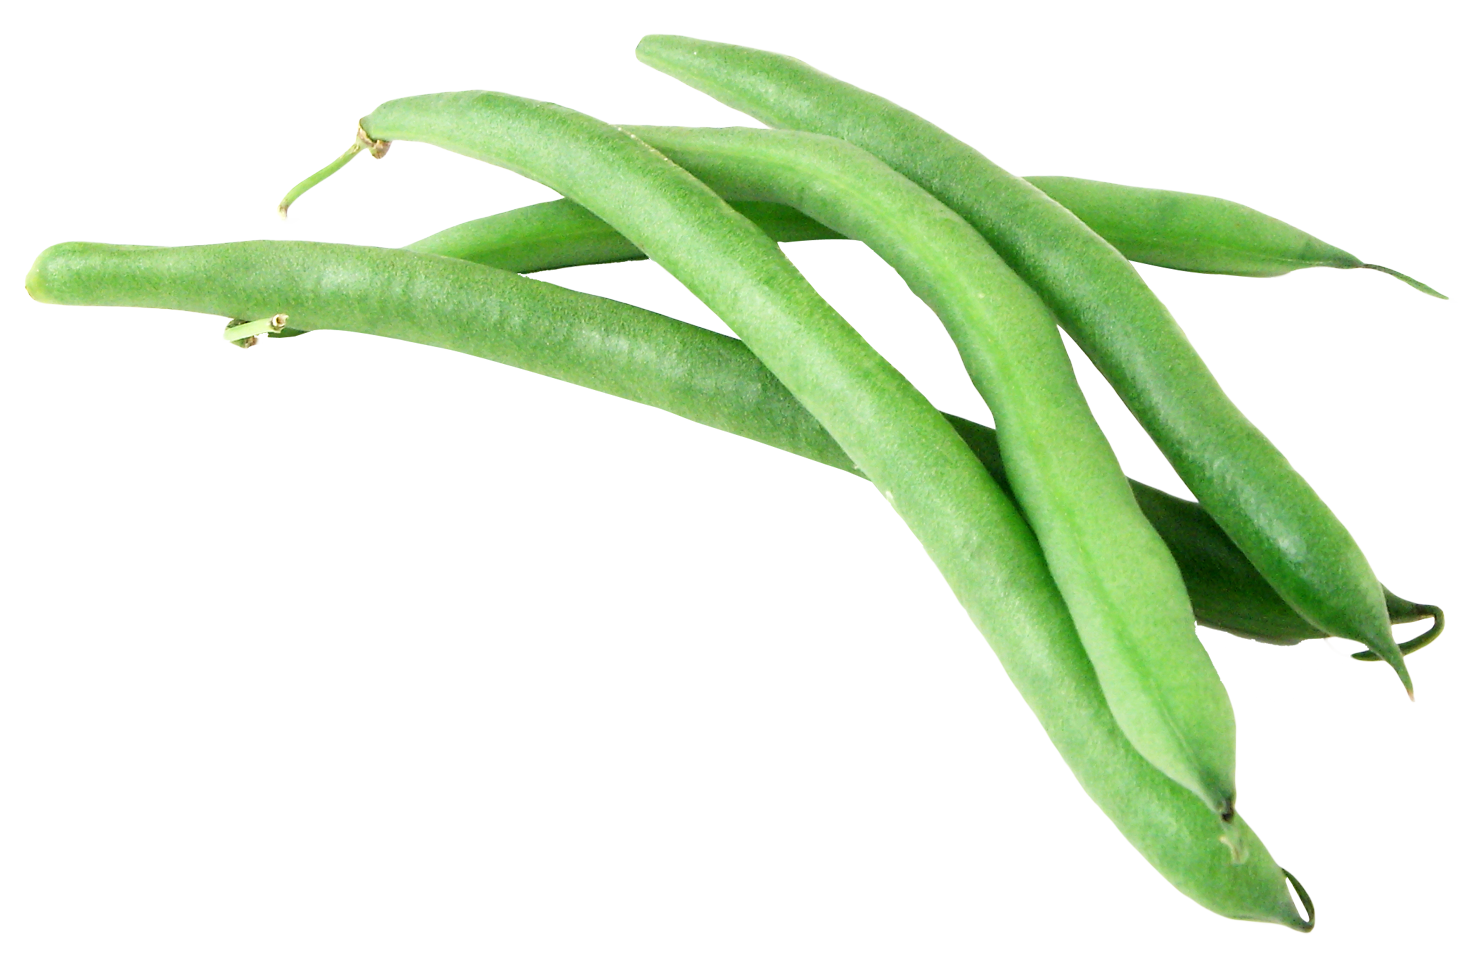 Green Beans PNG Image.